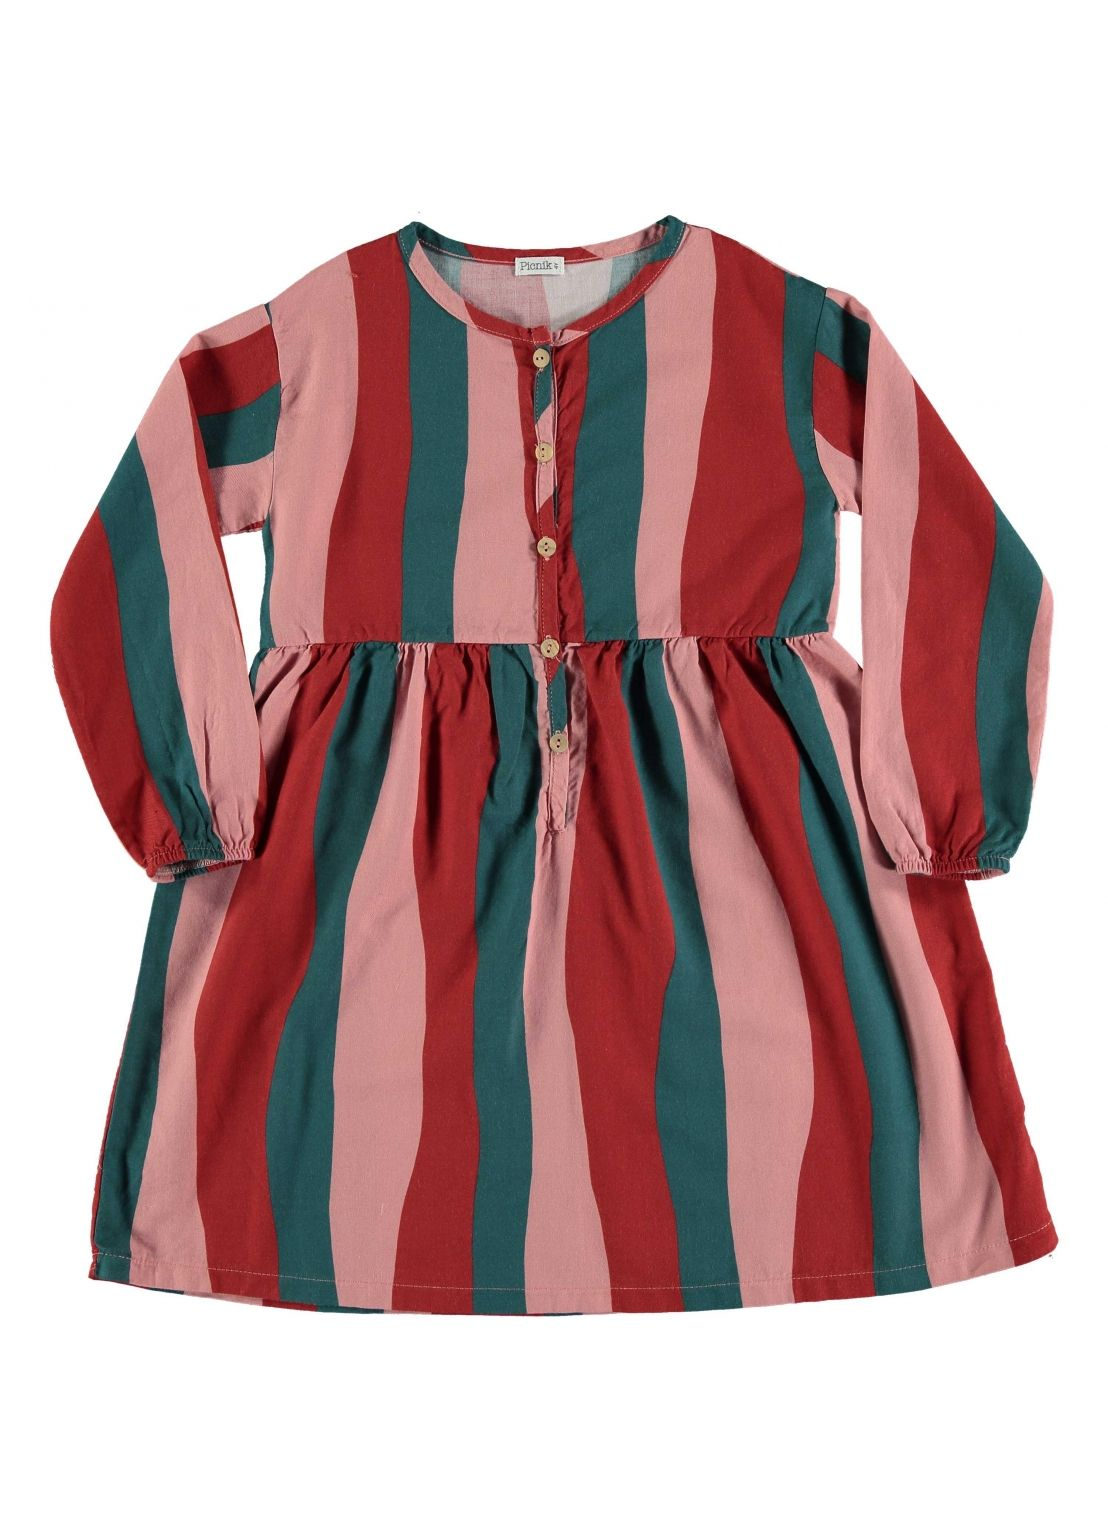 Kid  DRESS Girl-50% Cotton 50% Viscose- Woven